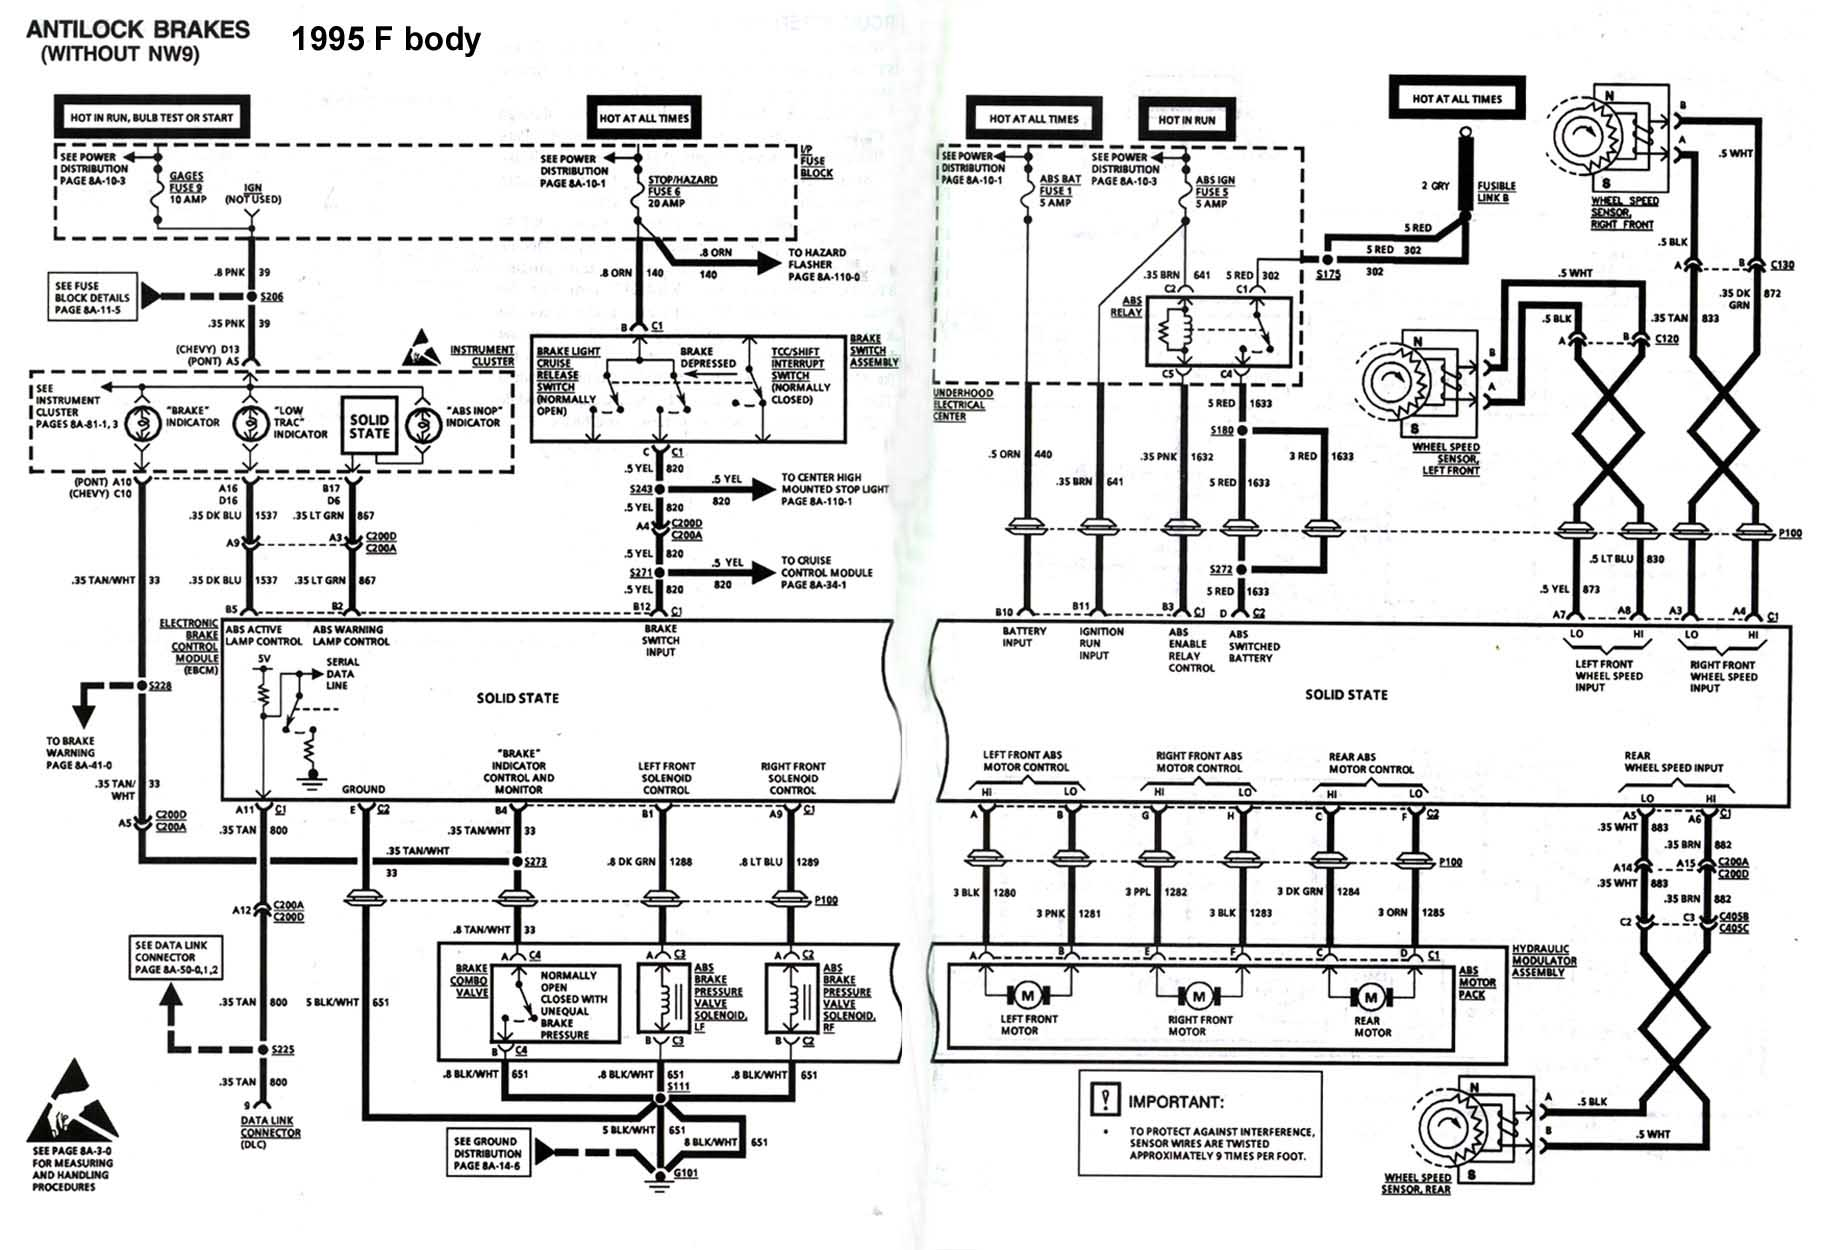 hight resolution of 94 camaro wiring diagram trusted wiring diagram 1979 chevy camaro wiring diagram 1994 camaro wiring diagram